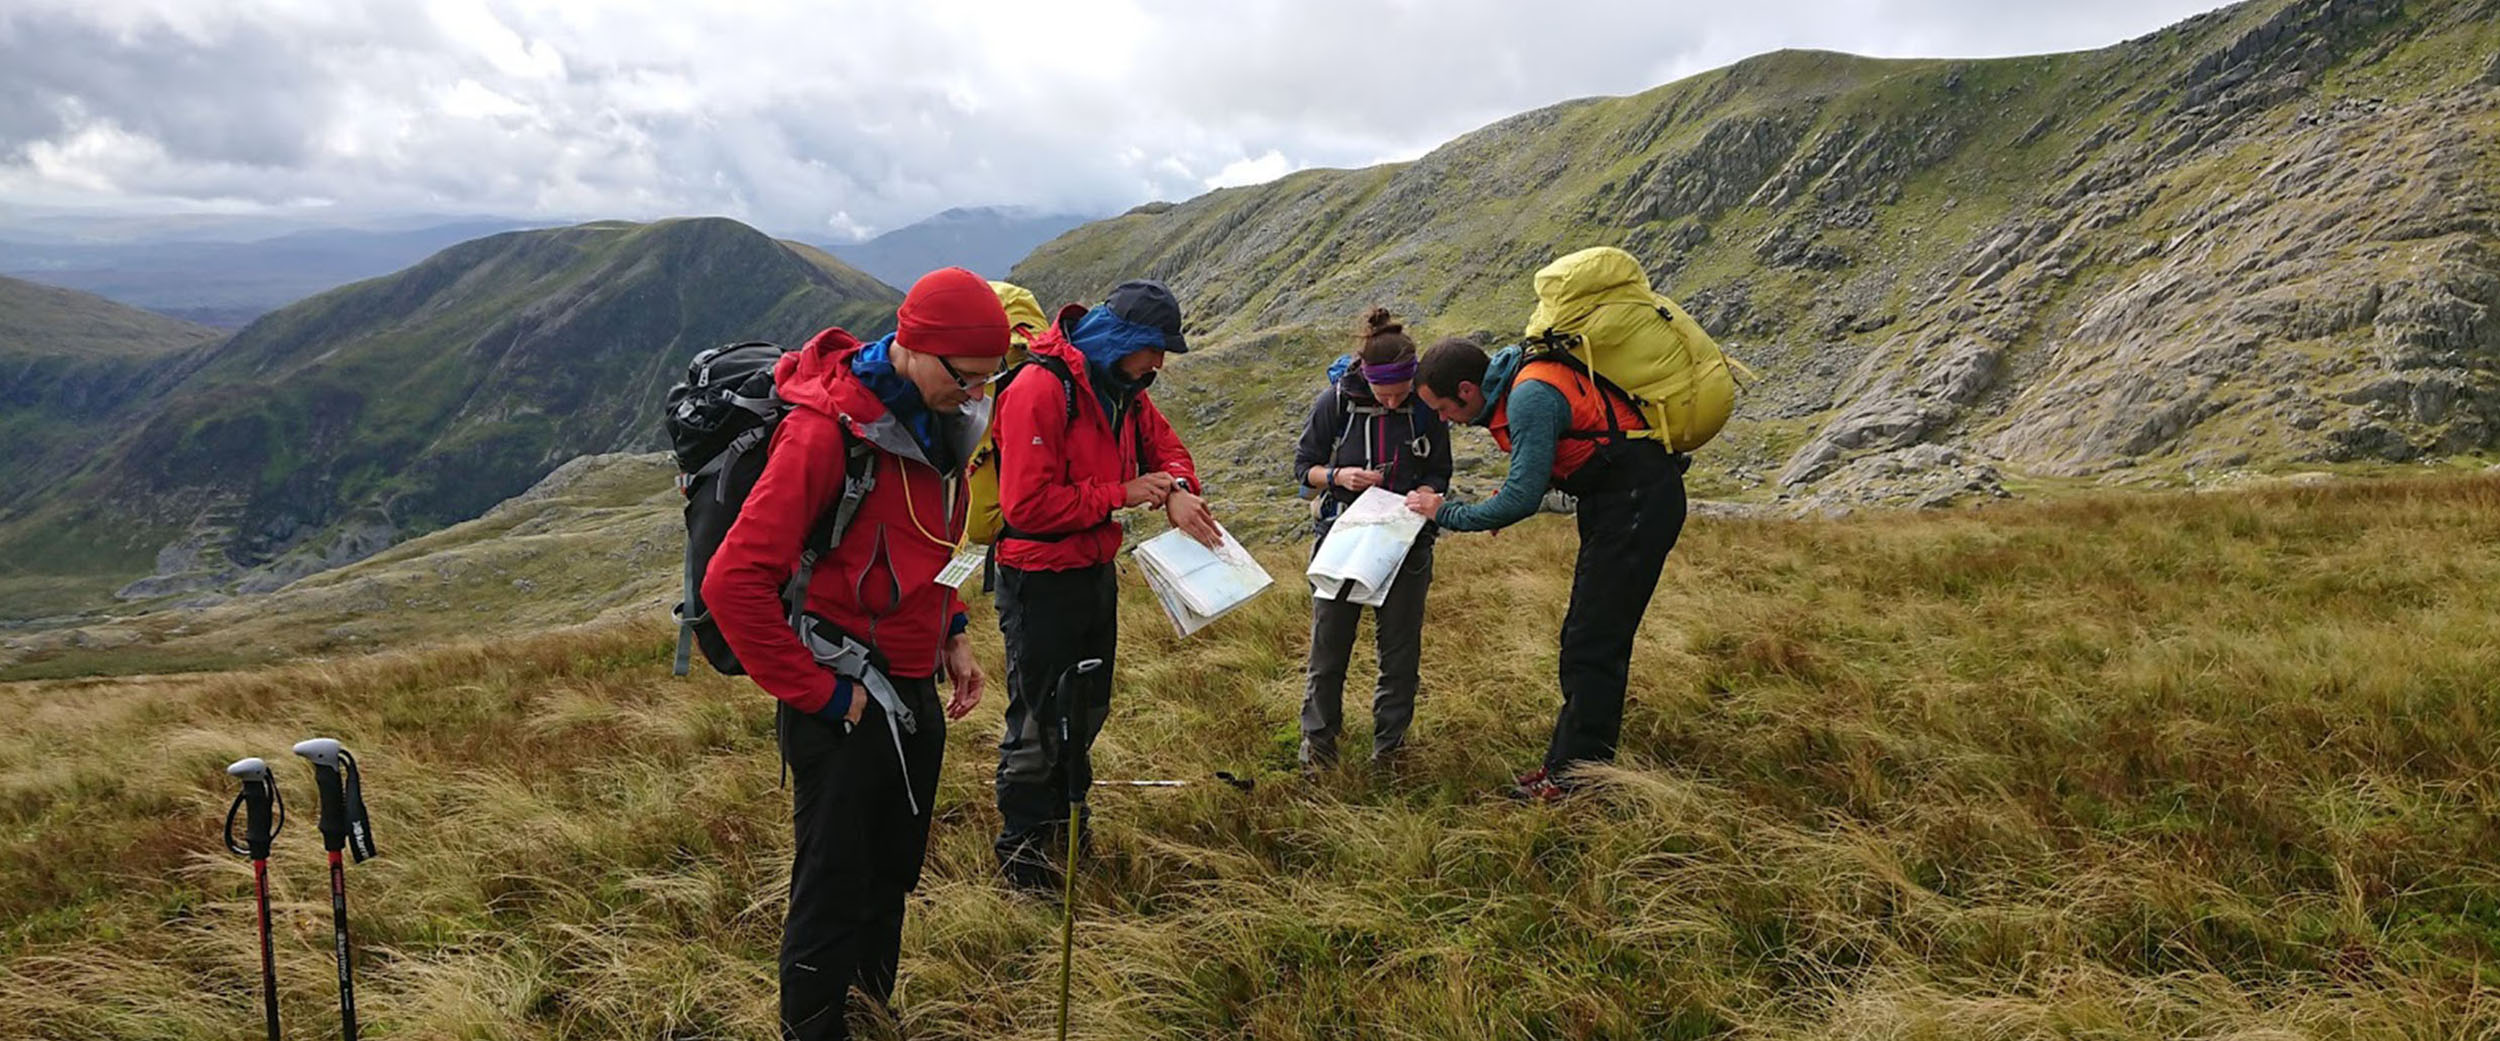 Four mountaineers reading maps on a hillside. One of them looks like an instructor